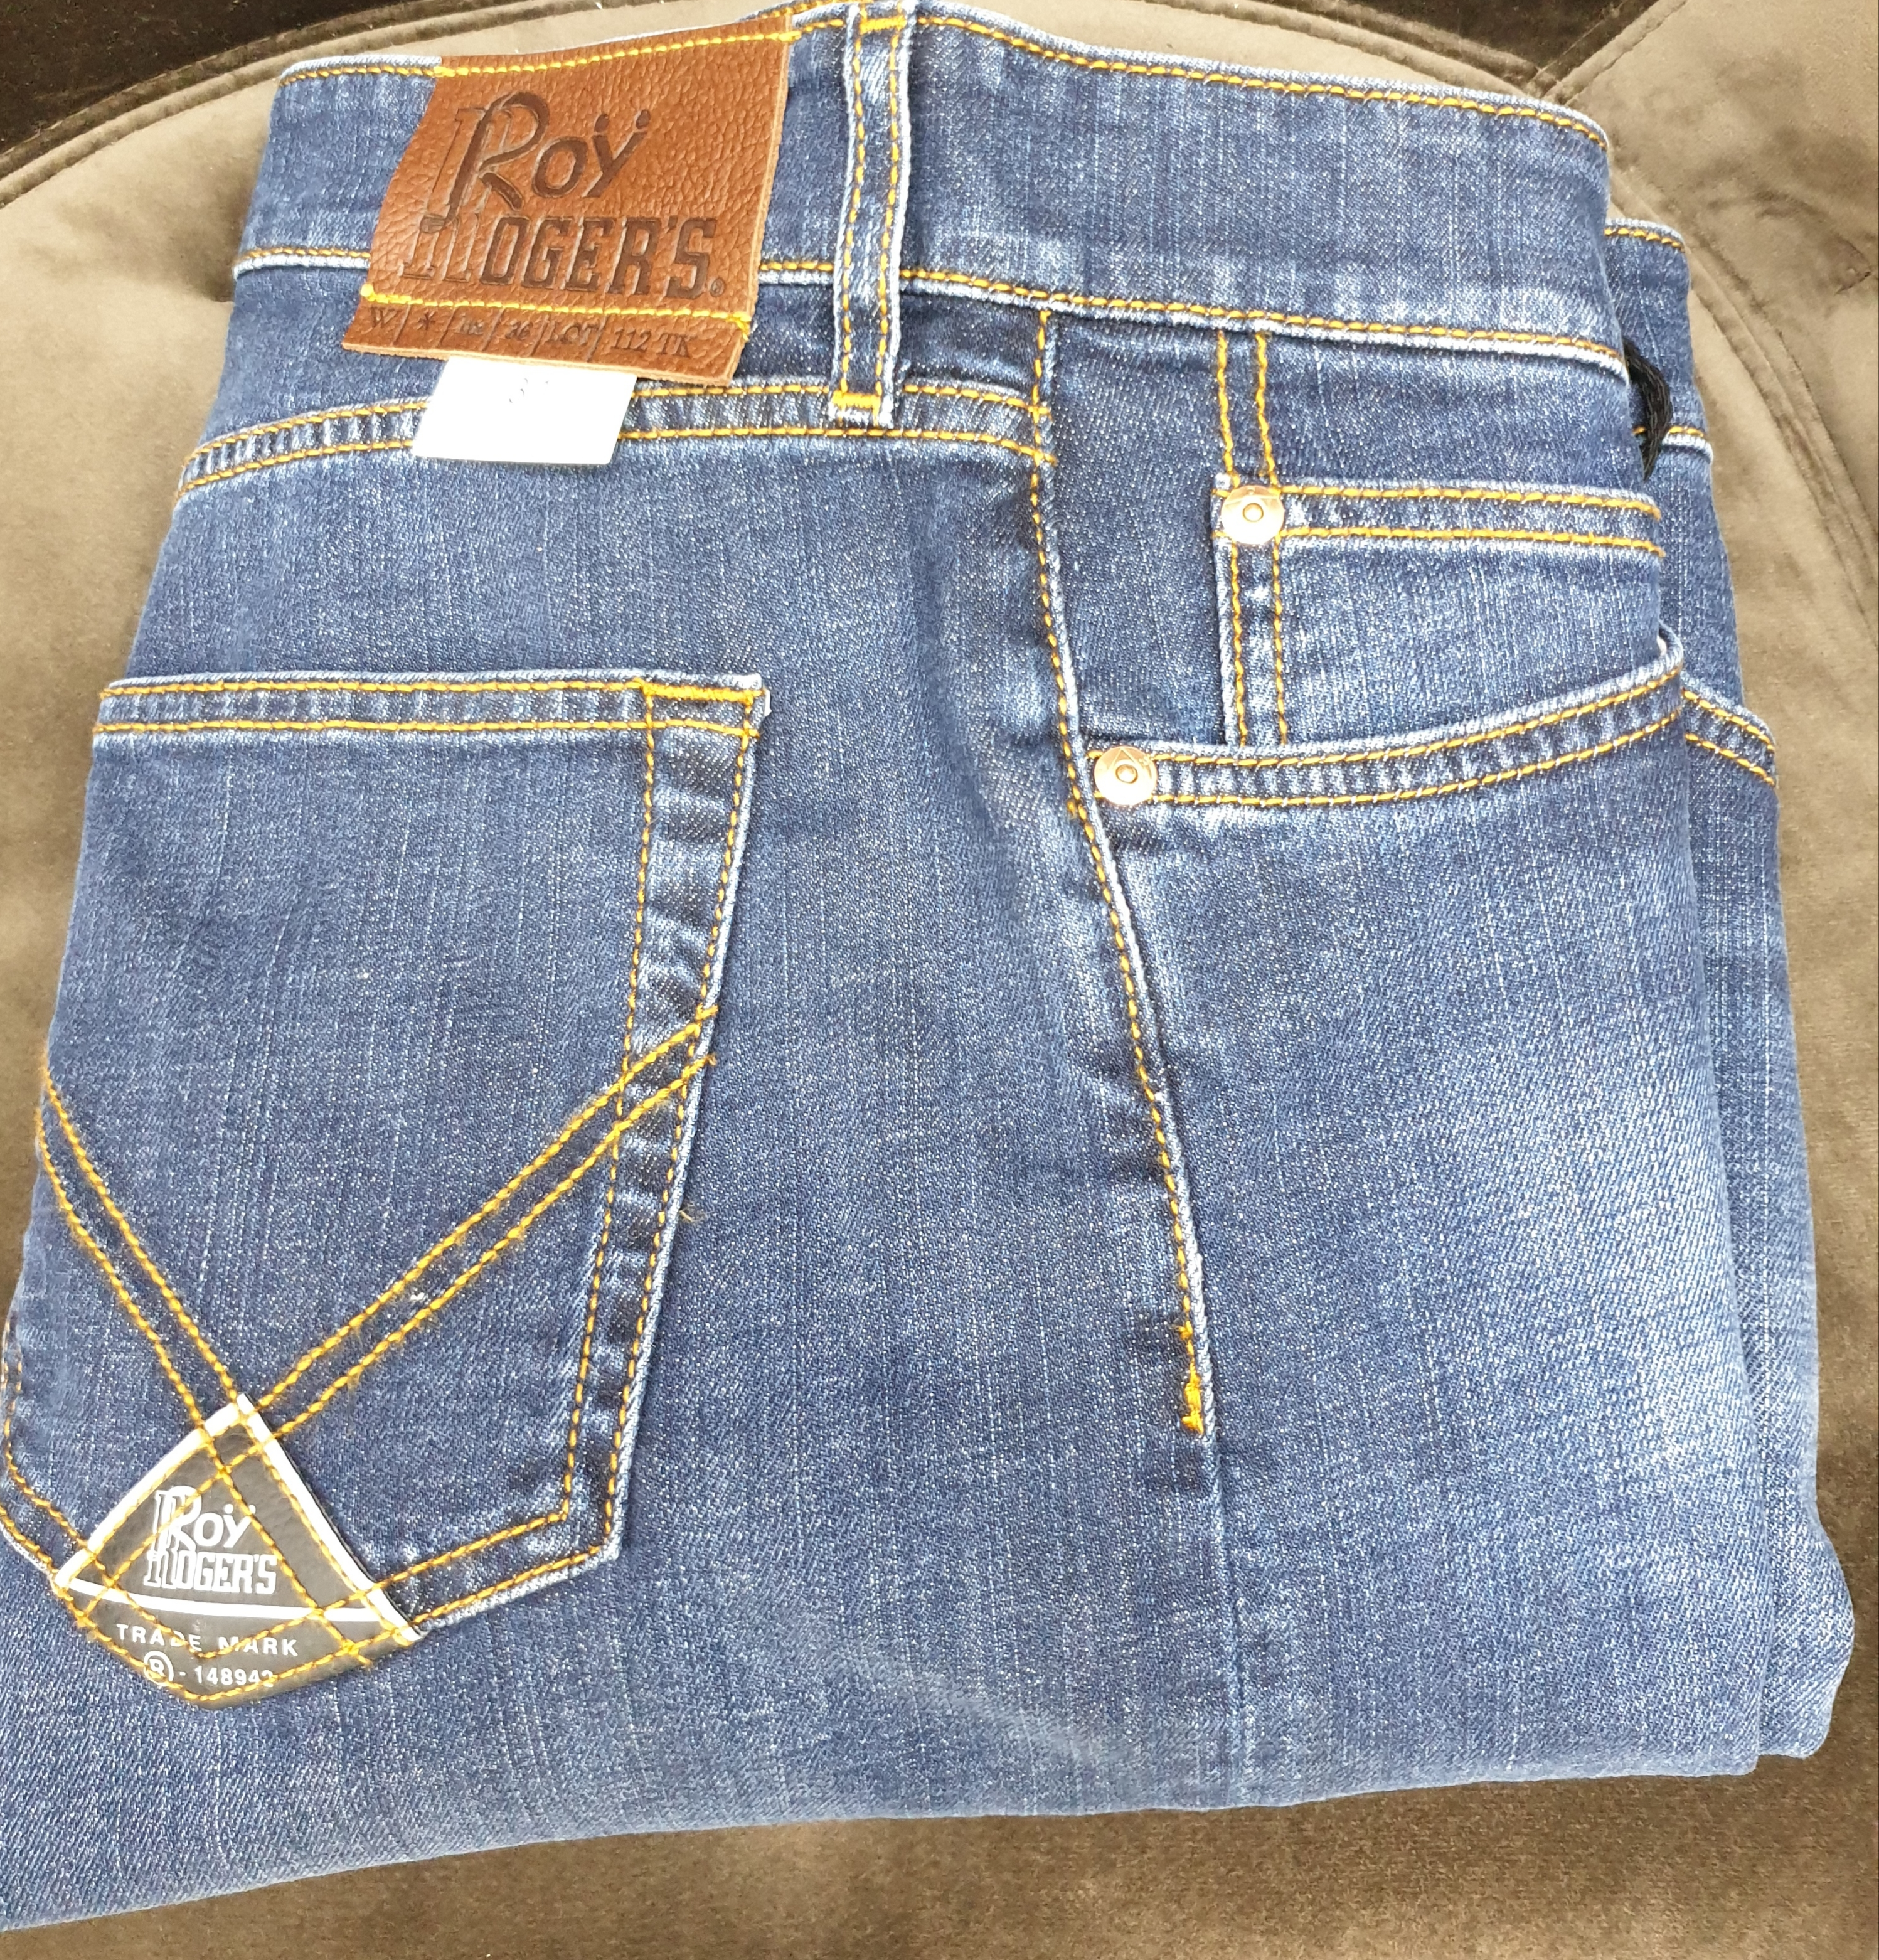 Jeans Roy Roger's 529 Pater